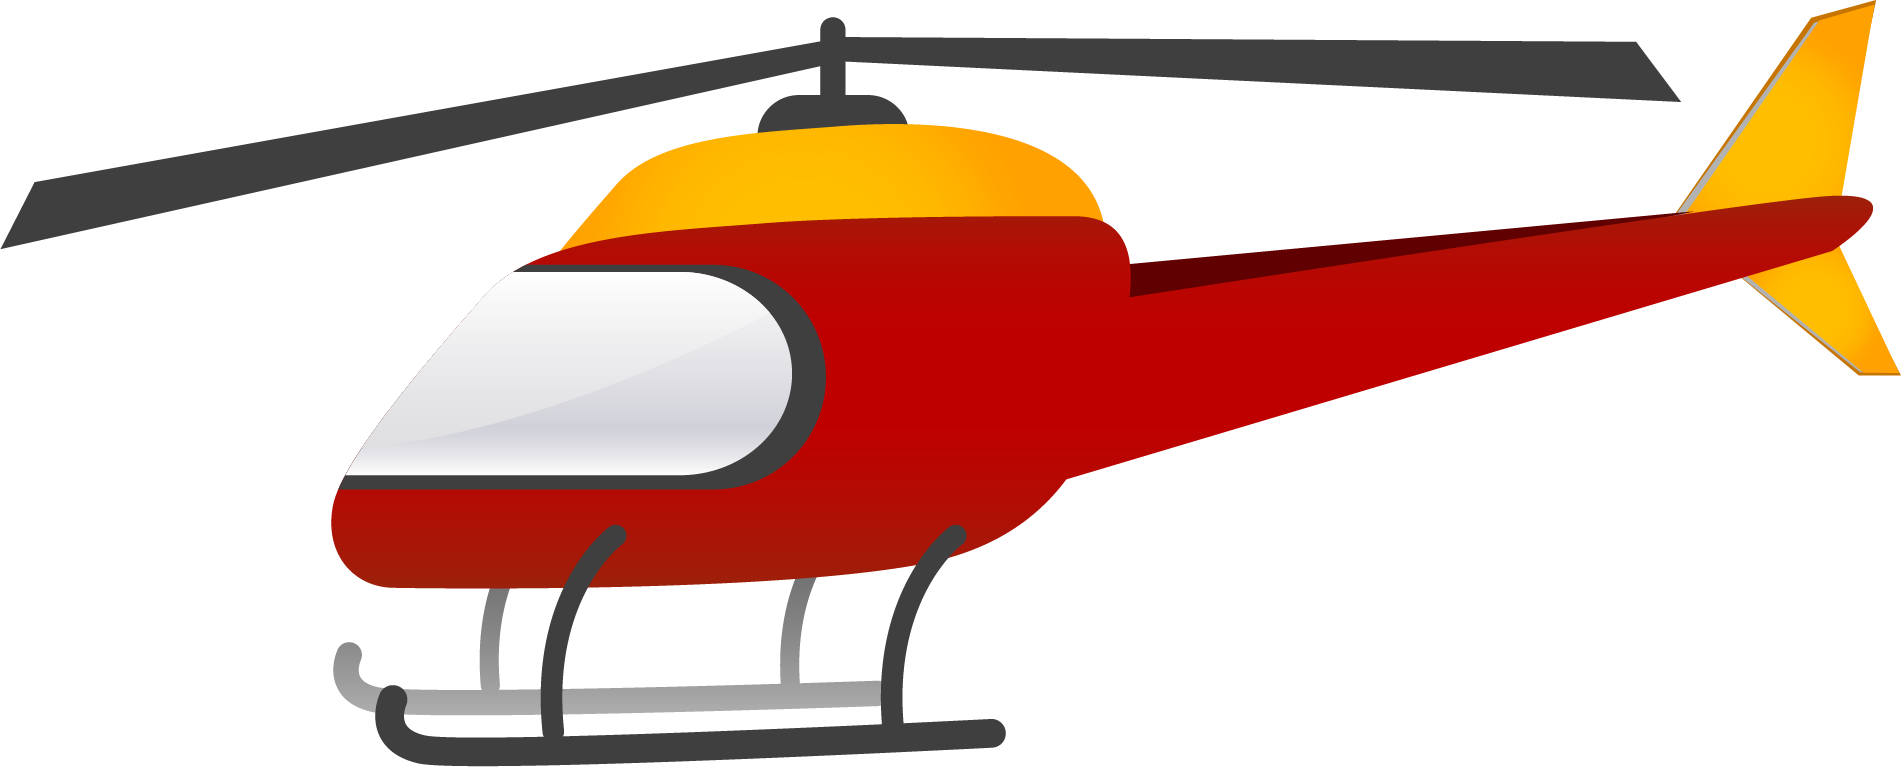 Helicopter clipart osprey. Rotor ah d bell